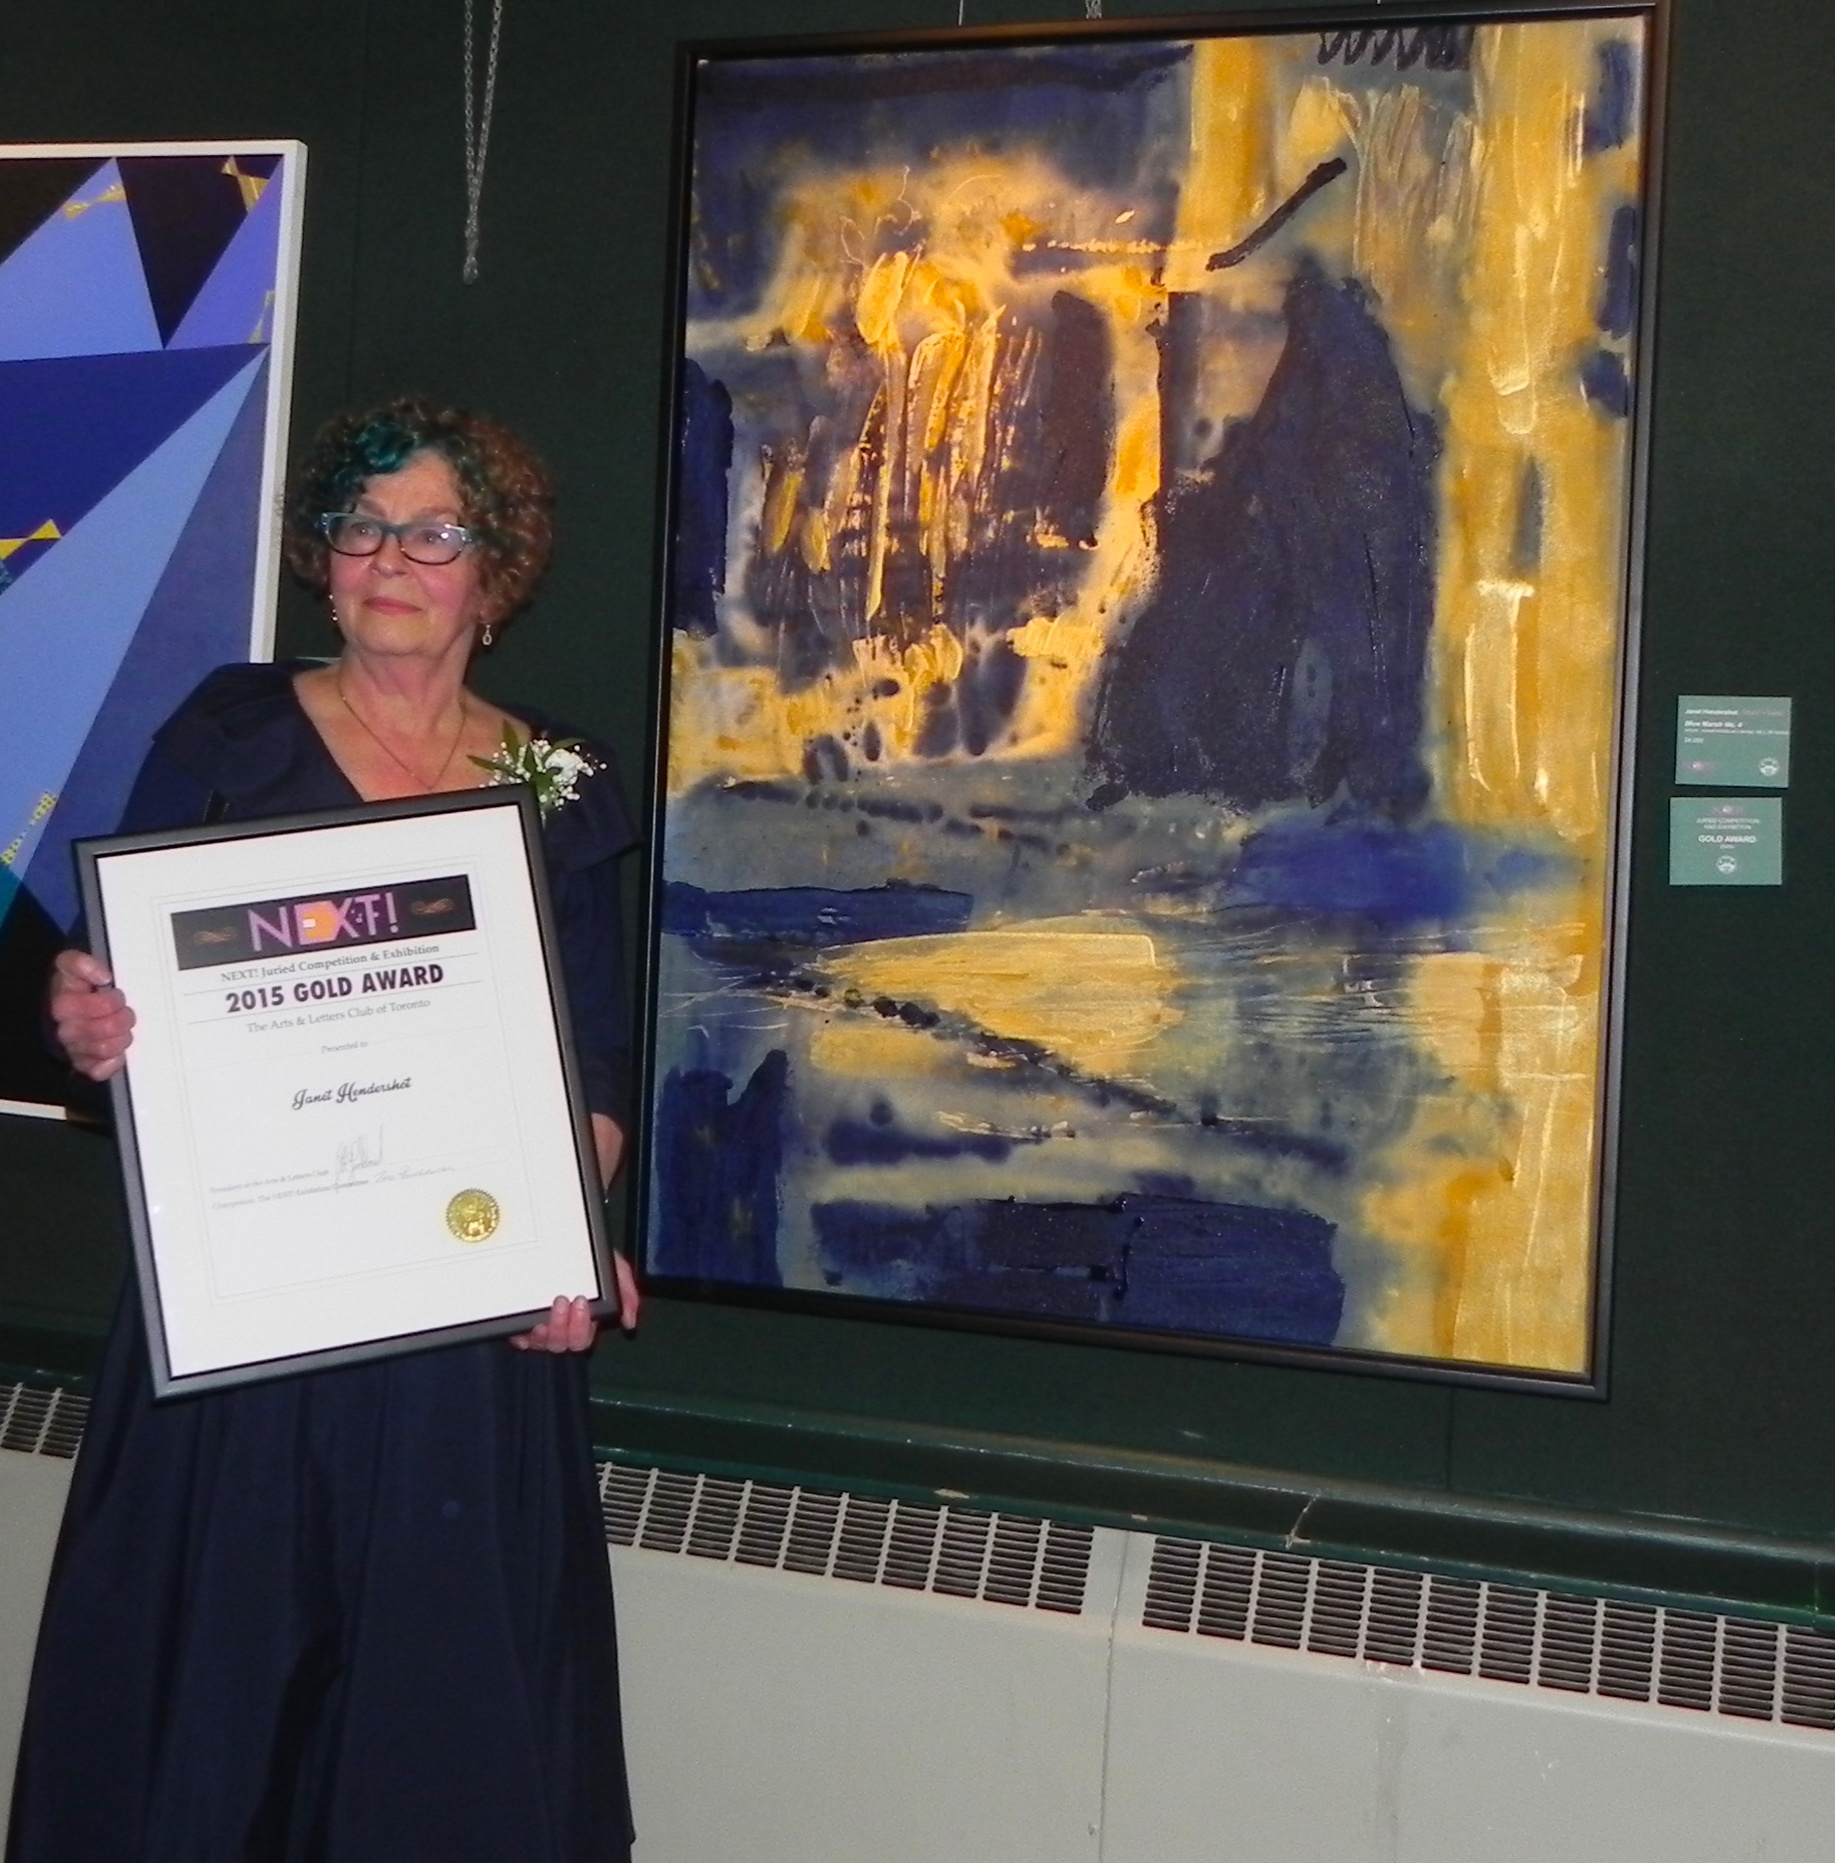 """Holding the Gold Award for Marshland No. 4 (acrylic, 48"""" x 36""""). Top award selected from initial 700 images entered to the NEXT! exhibition, Arts and Letters Club, Toronto"""